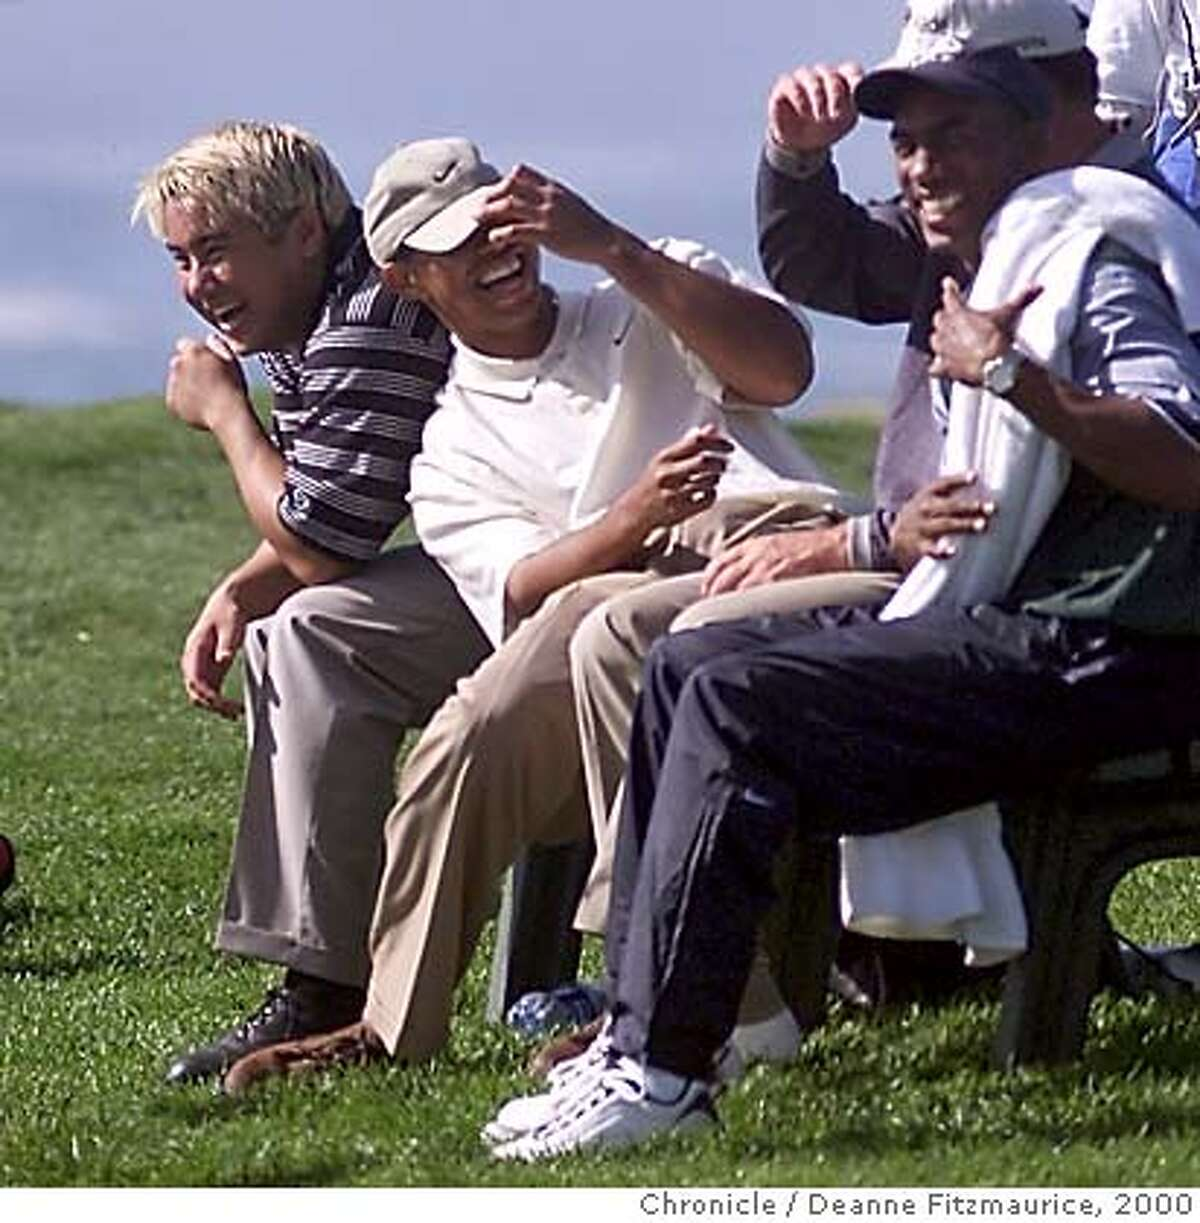 AT&T-TIGER2-C-06FEB00-SP-DF AT&T Pebble Beach National Pro-Am Championship at Pebble Beach Golf Course. Tiger Woods shares a laugh with teammate Jerry Chang (O'Meara is hidden) and a caddy as they sit on a bench at the 8th tee during a weather delay. CHRONICLE PHOTO BY DEANNE FITZMAURICE